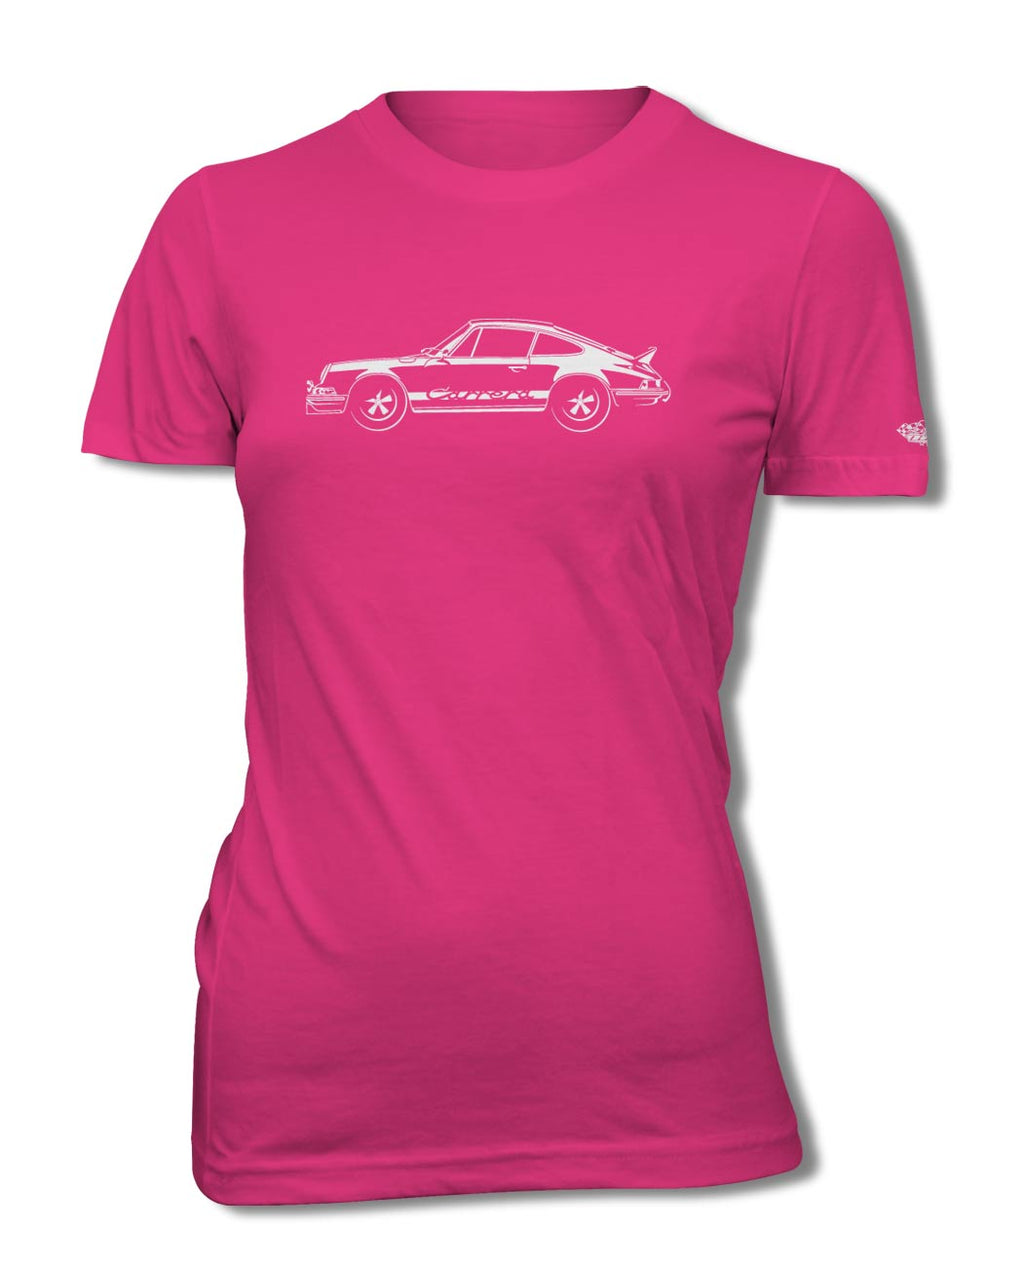 Porsche 911 Carrera RS T-Shirt - Women - Side View